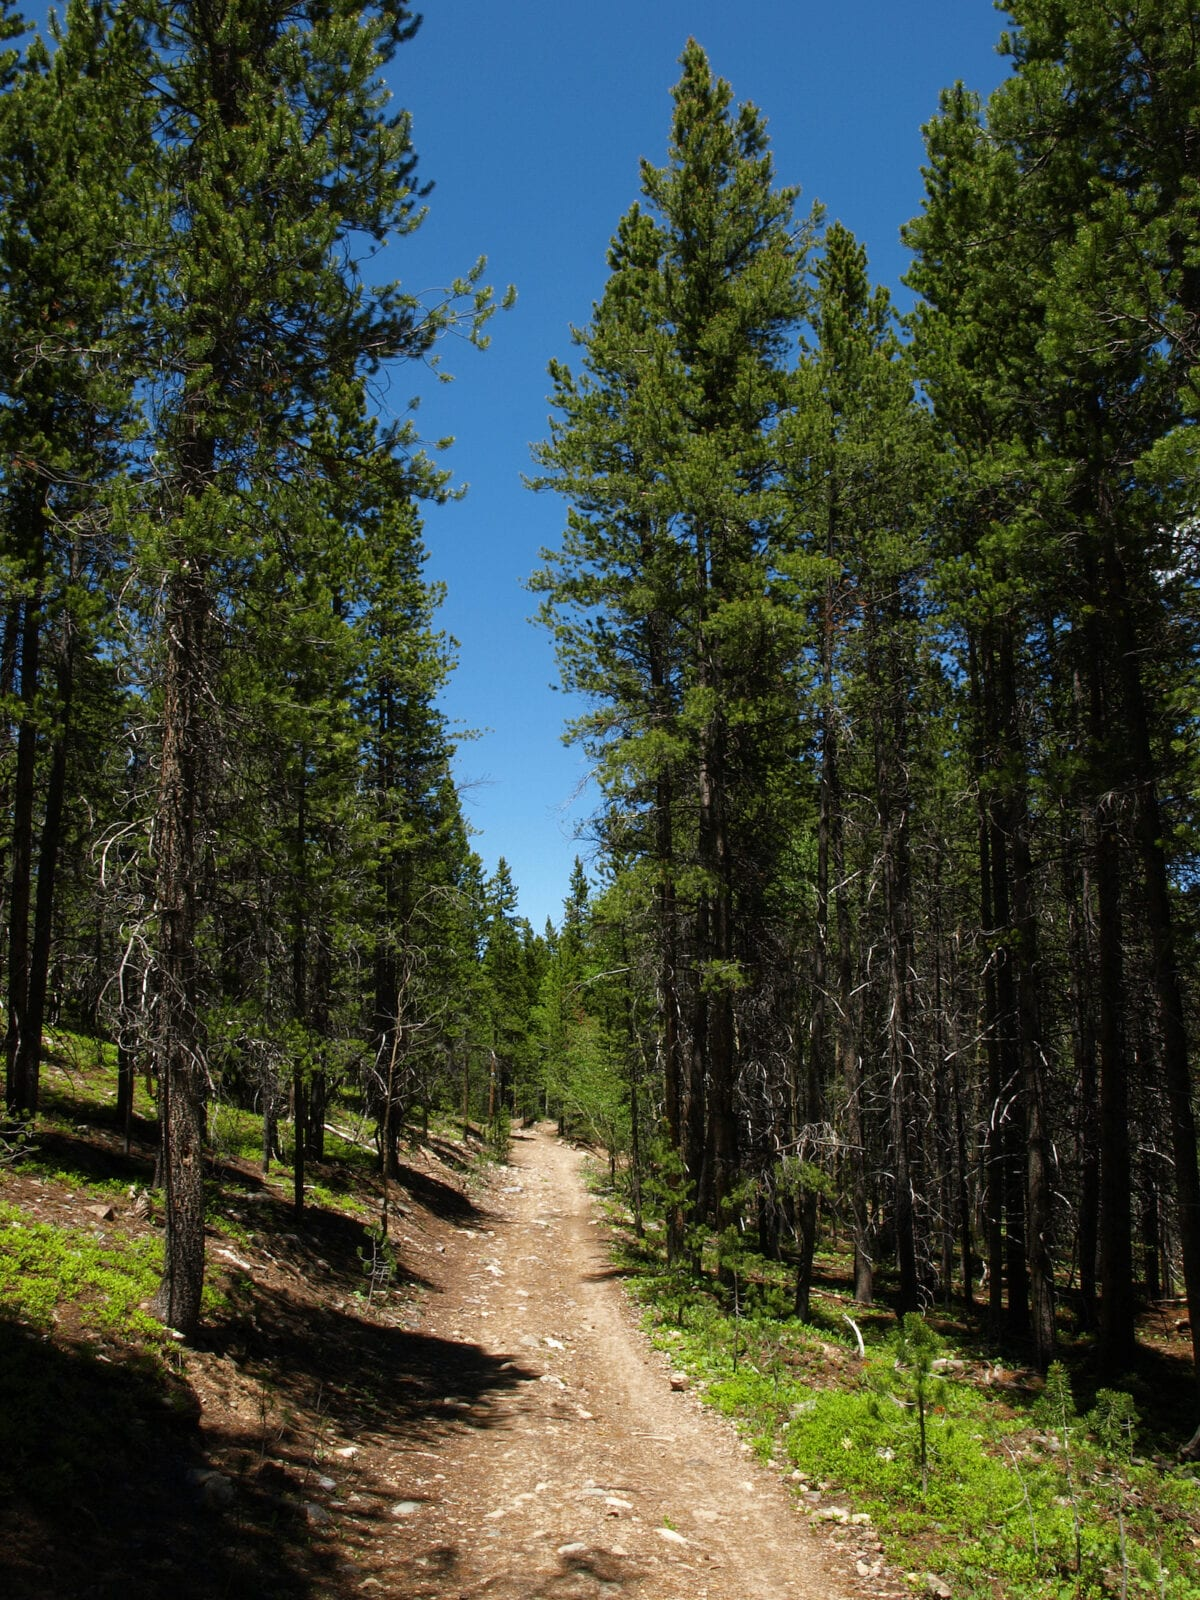 Burro Trail in Breckenridge, Colorado